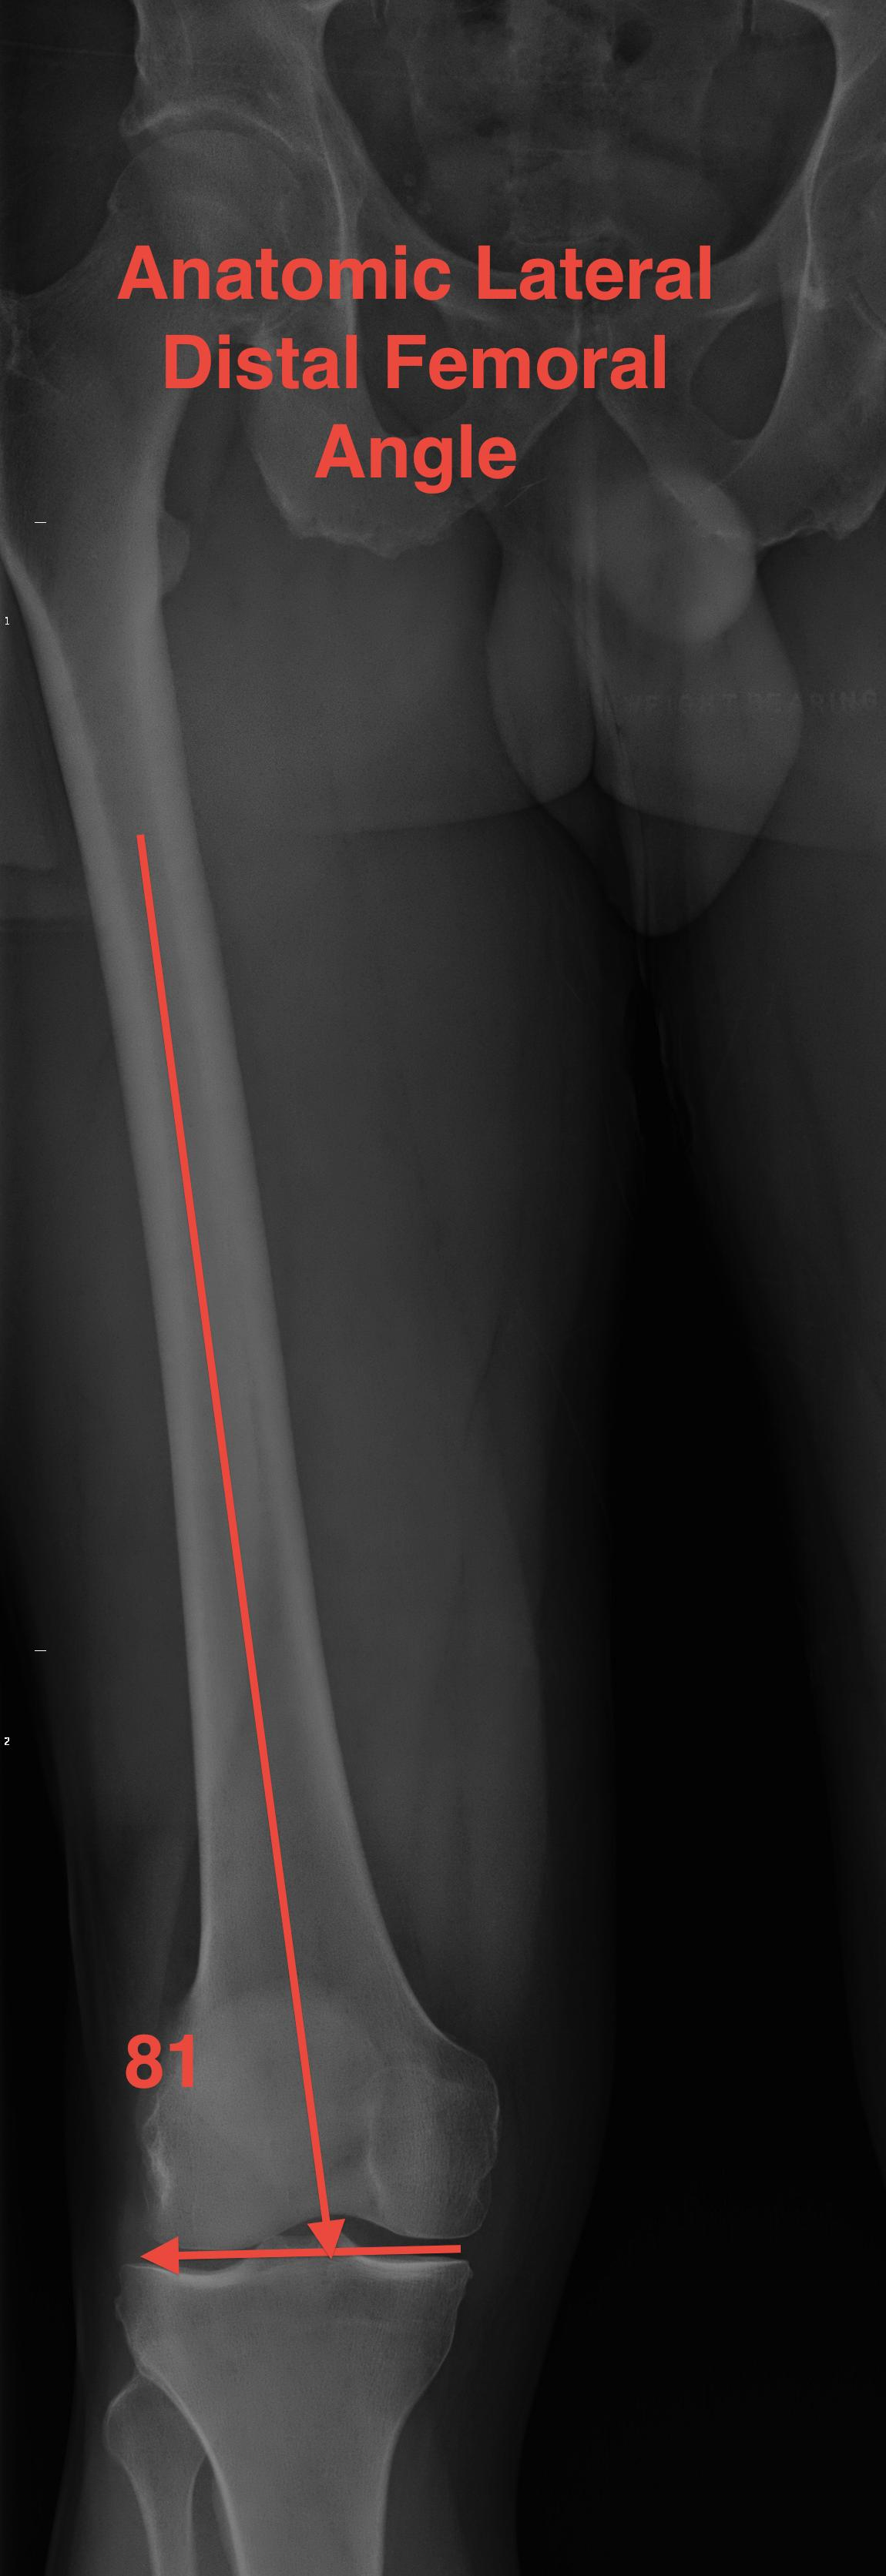 Anatomic Lateral Distal Femoral Angle